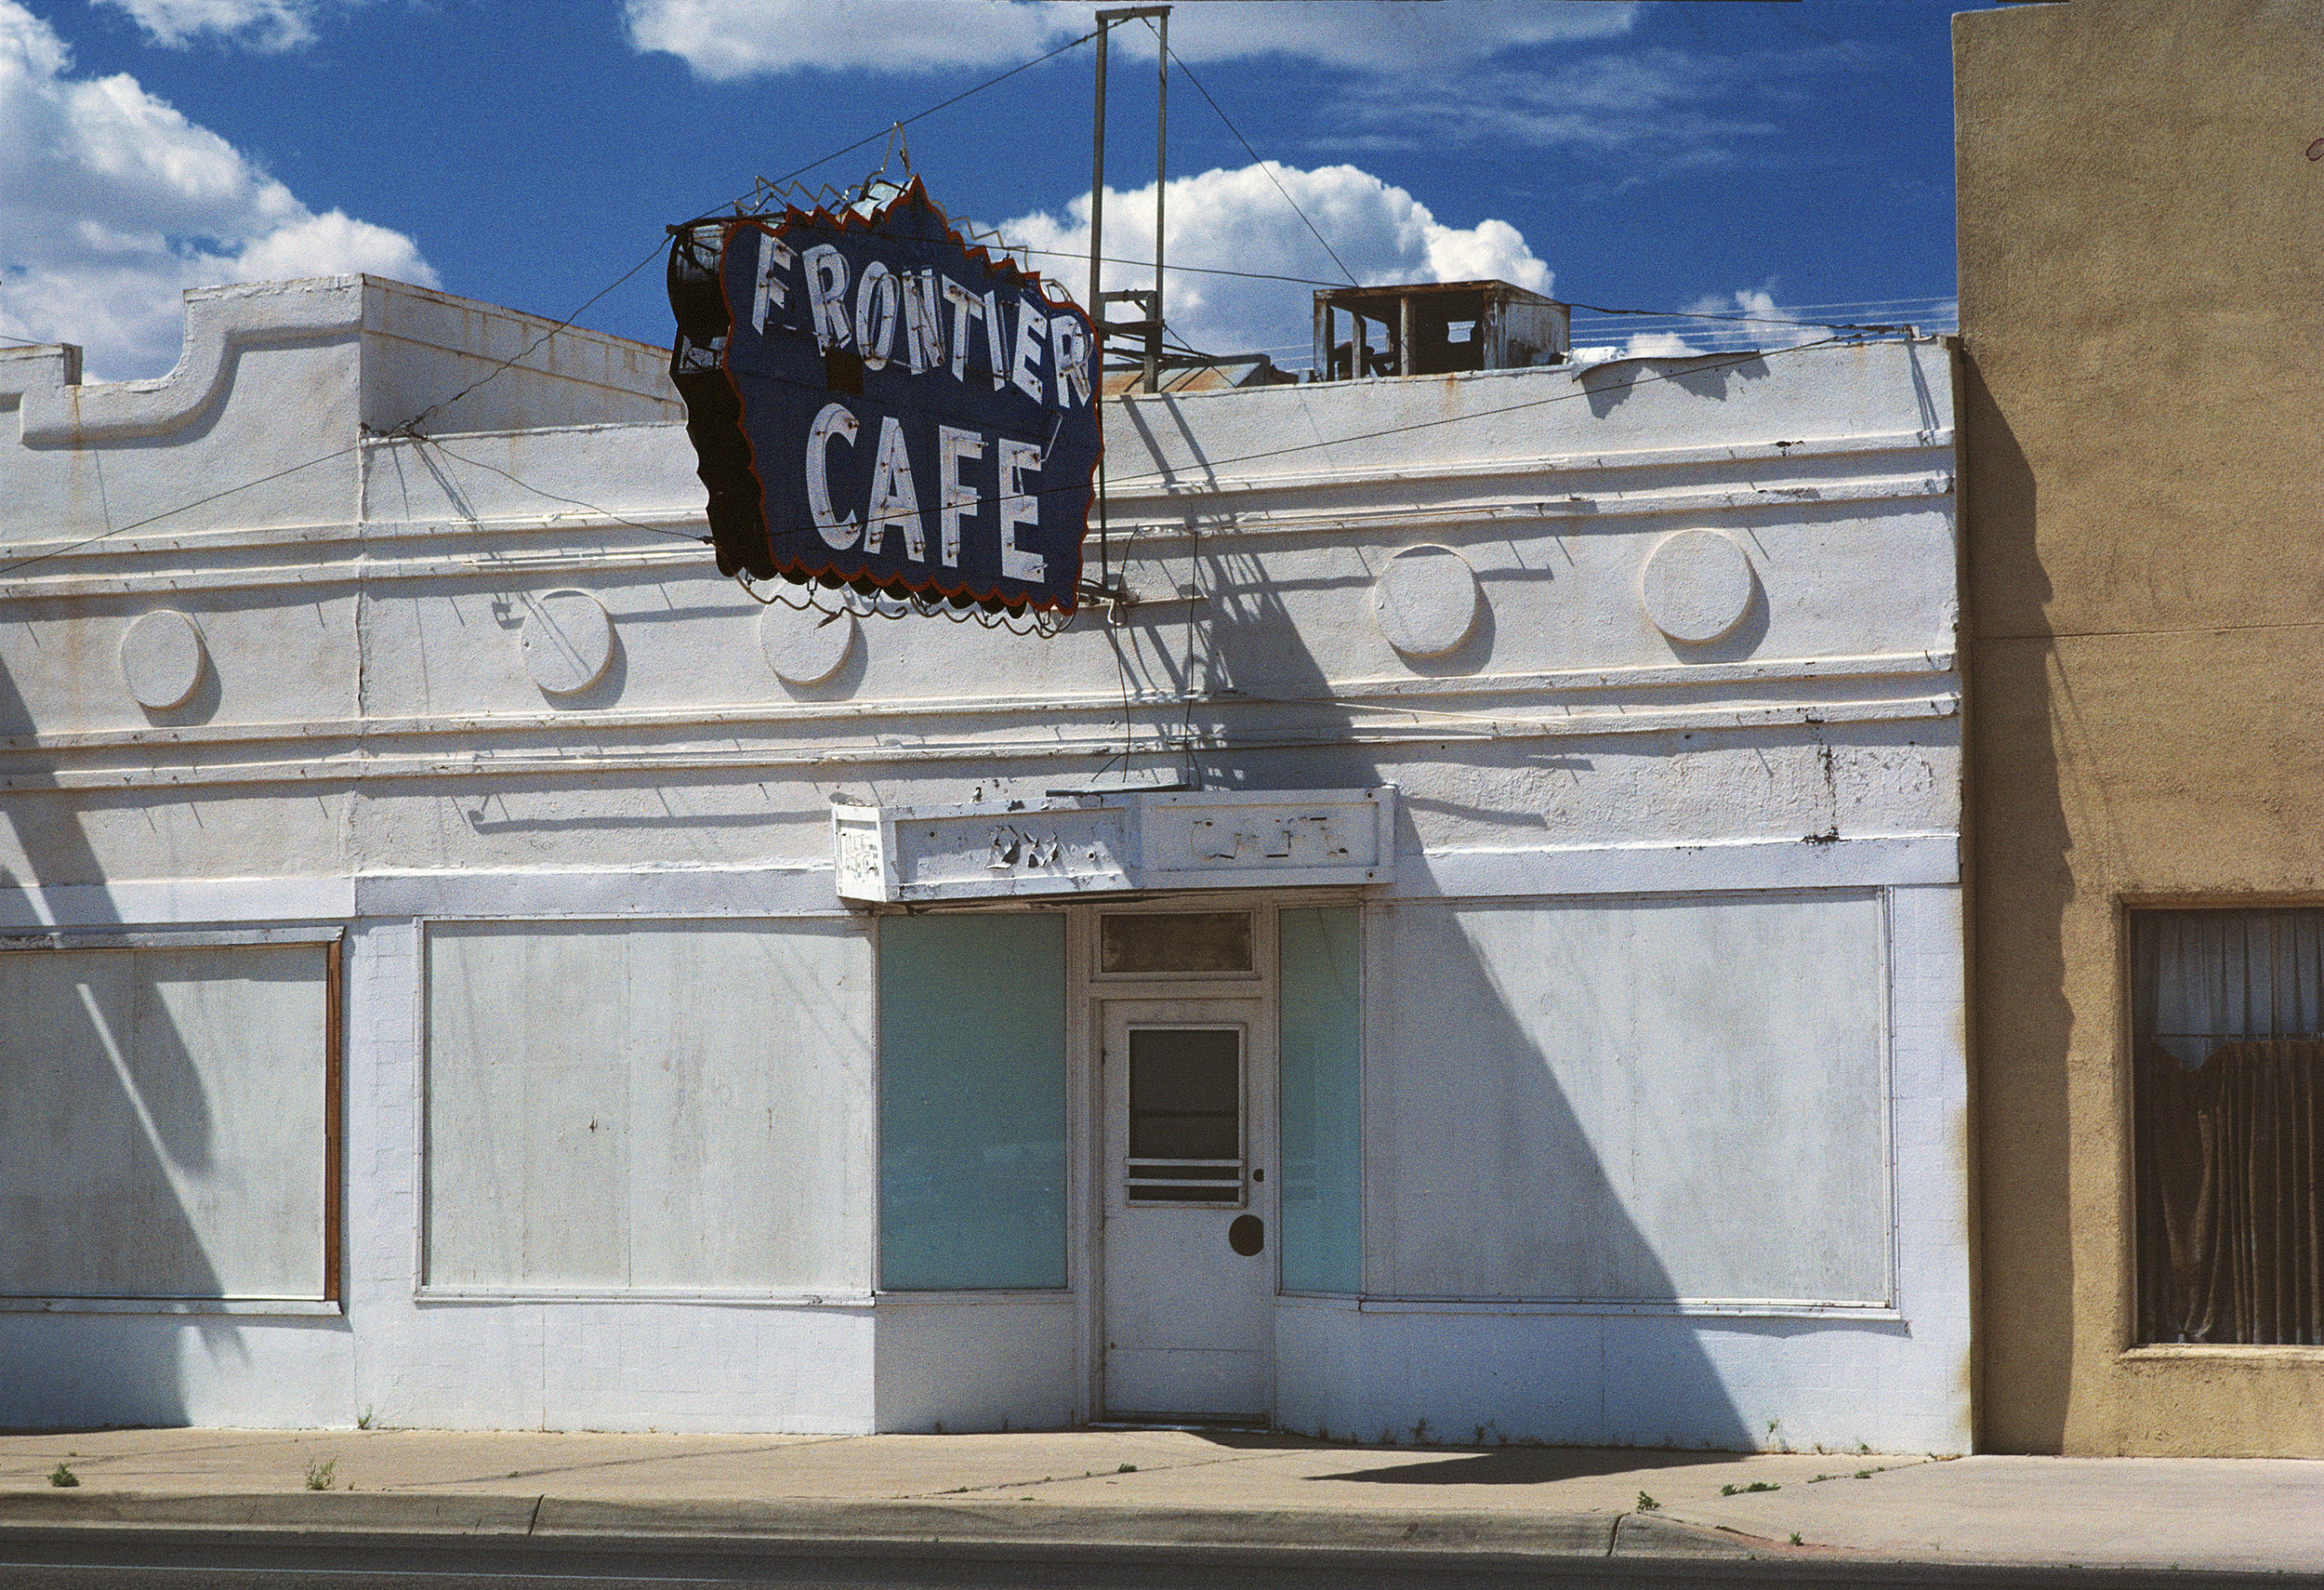 FRONTIER CAFE ©2019 DONALD McCREA